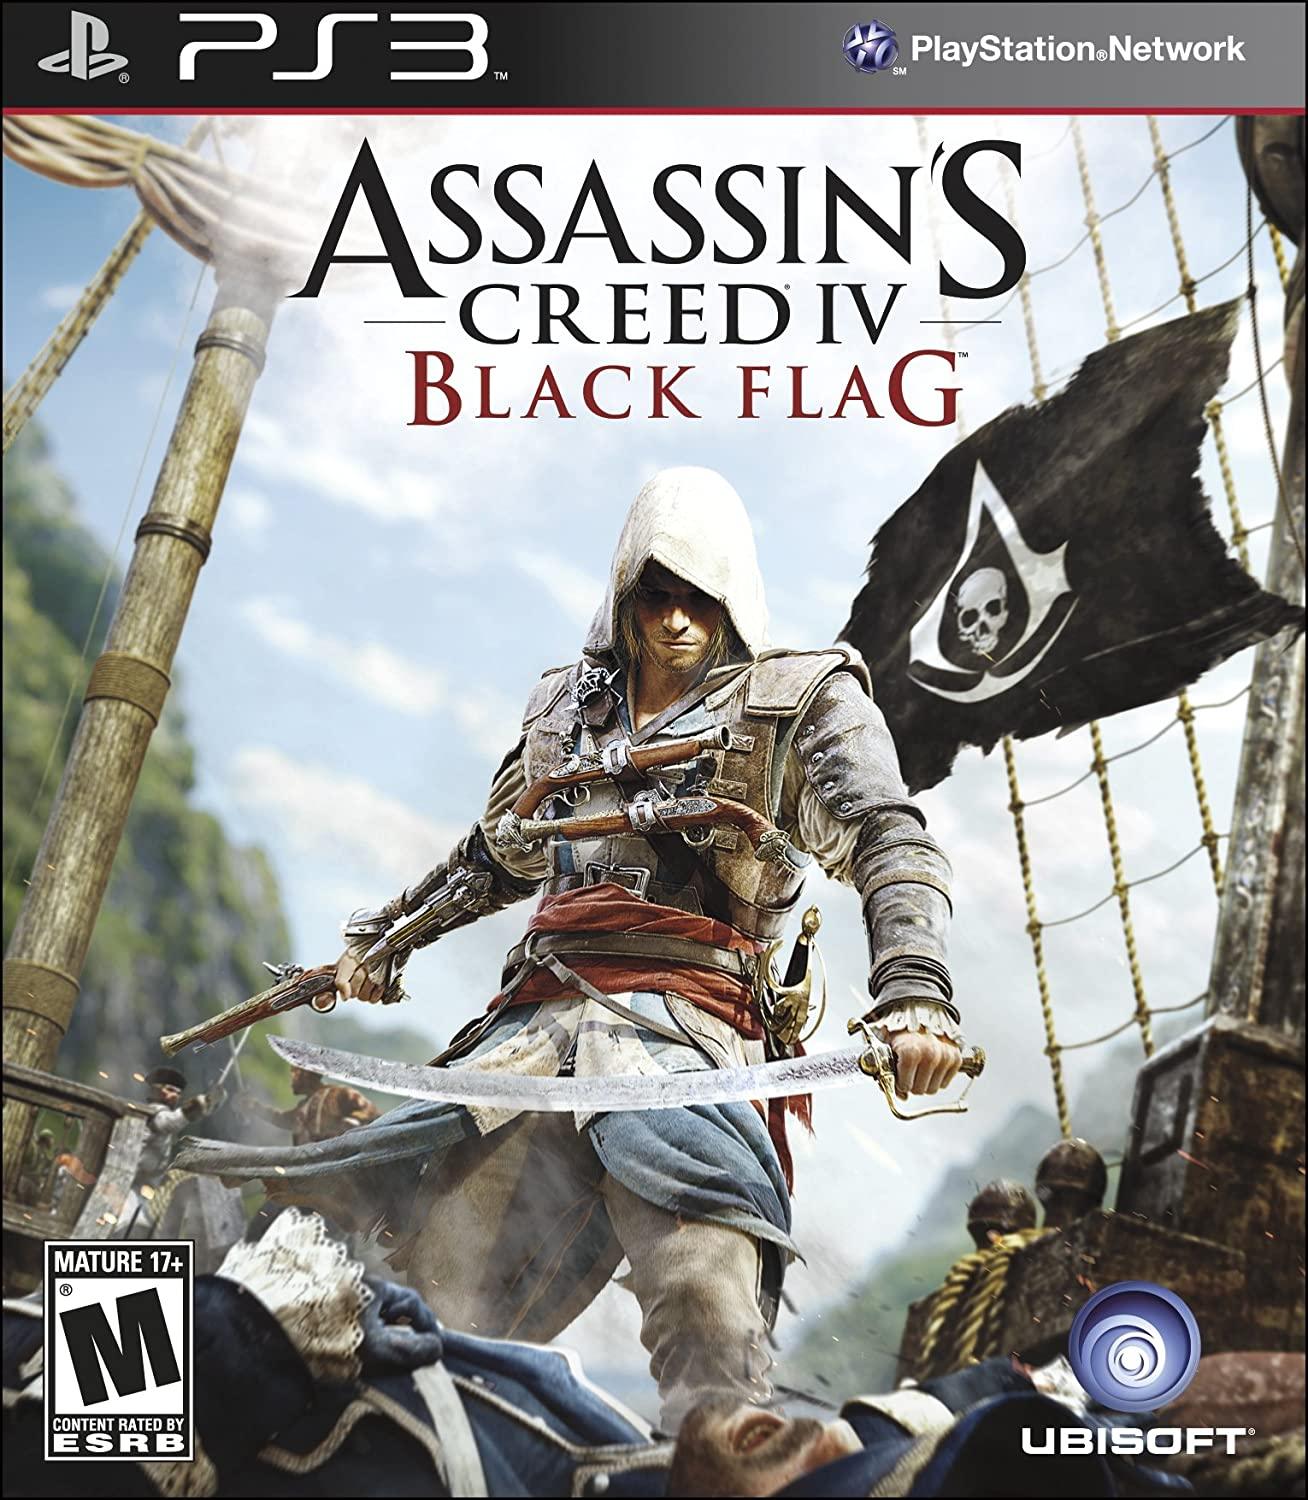 Assassin's Creed IV: Black Flag [Completo] - PS3